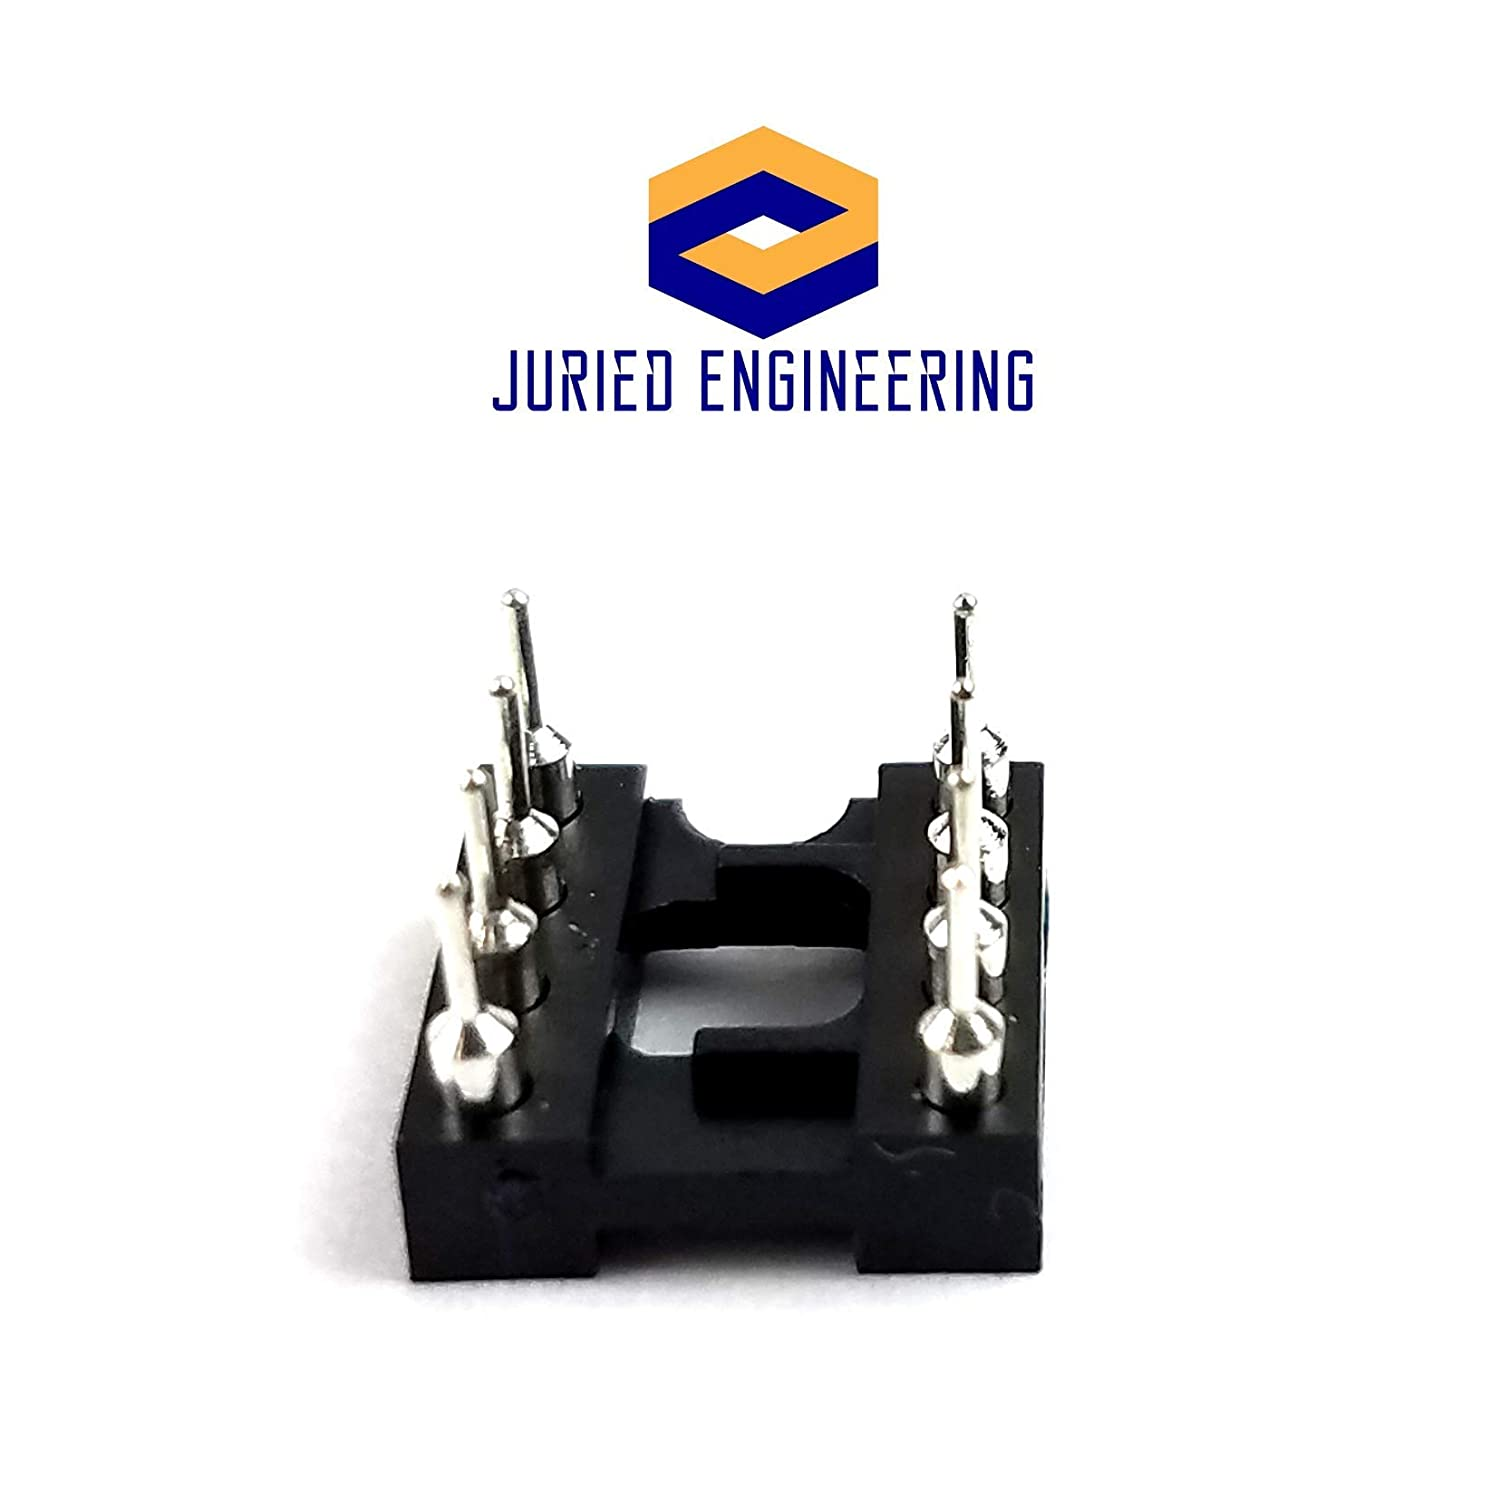 Pack of 1 Juried Engineering DIP-8 IC DIP Sockets Machined Round Contact Pins Holes Pitch 2.54mm 8-Pin DIP DIP8 DIP 8 Breadboard-Friendly